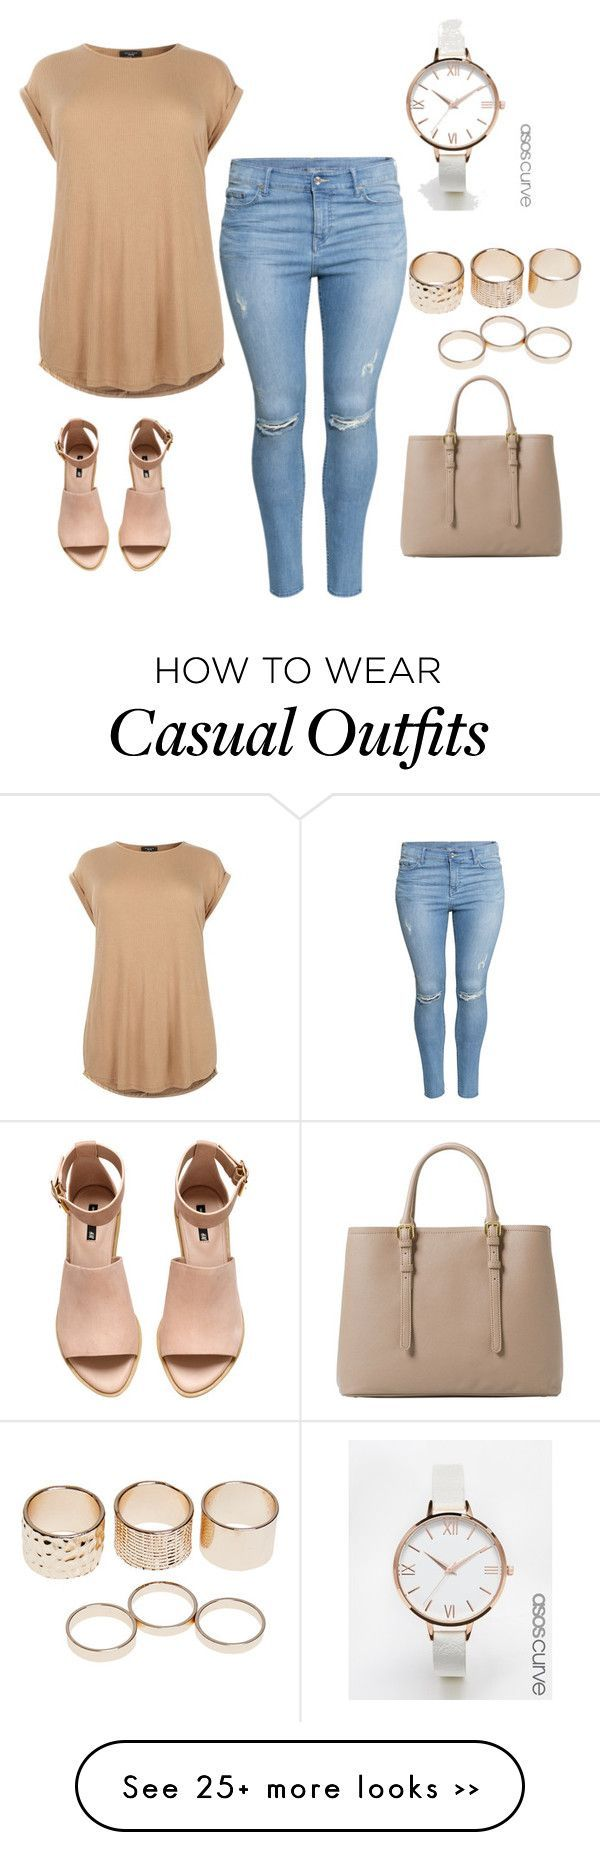 """Casual but Cute ."" by kiaraamonae on Polyvore featuring H&M, ASOS Curve, Wet Seal and MANGO"